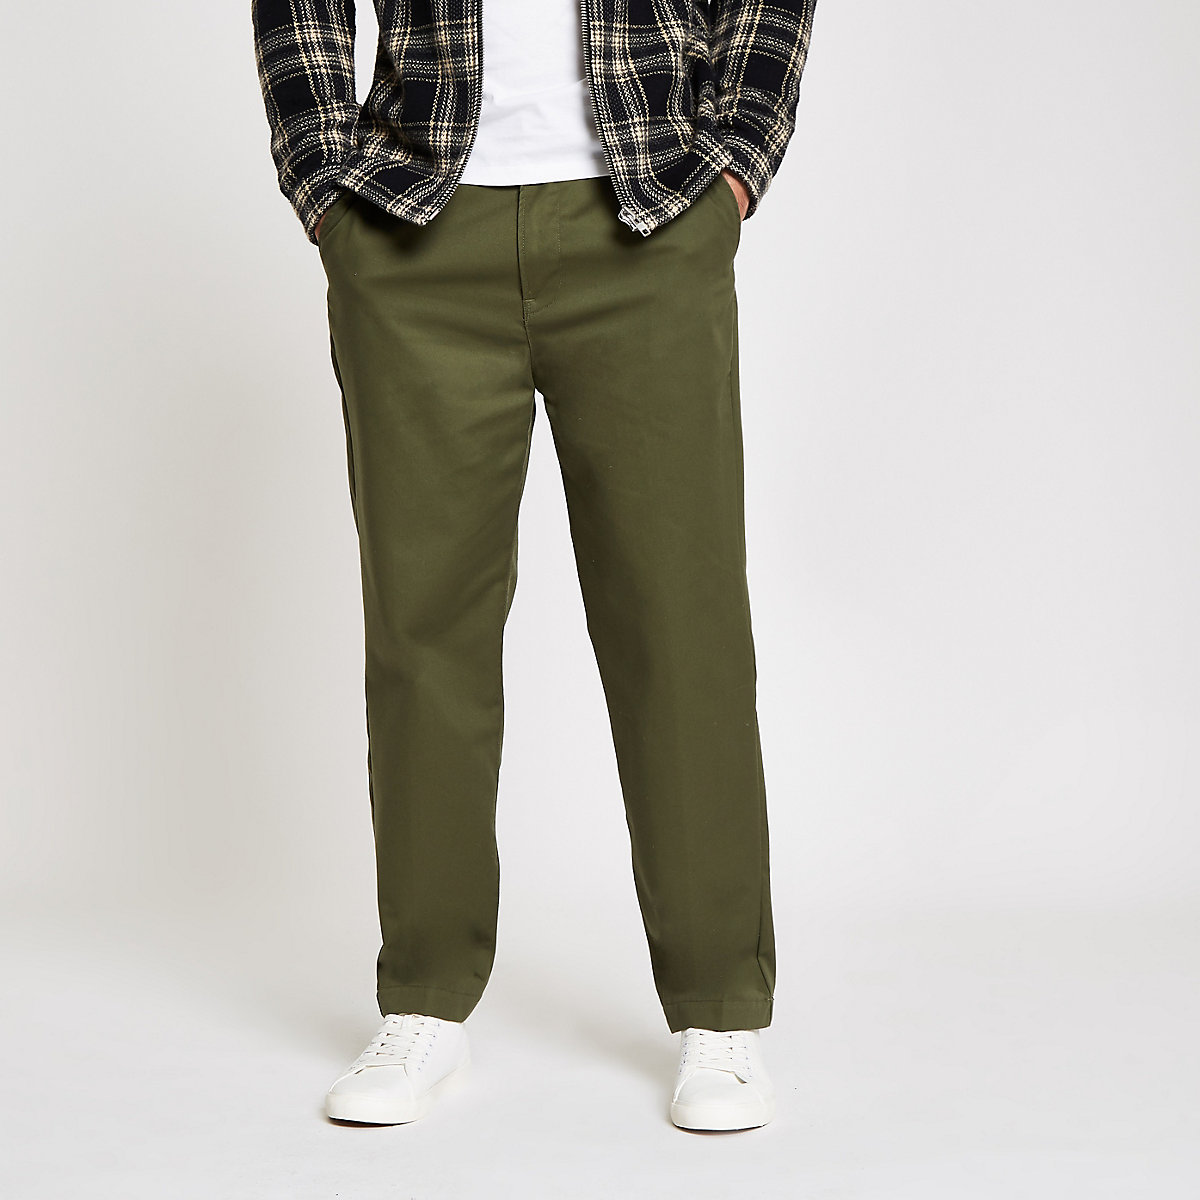 Lee dark green relaxed chino pants